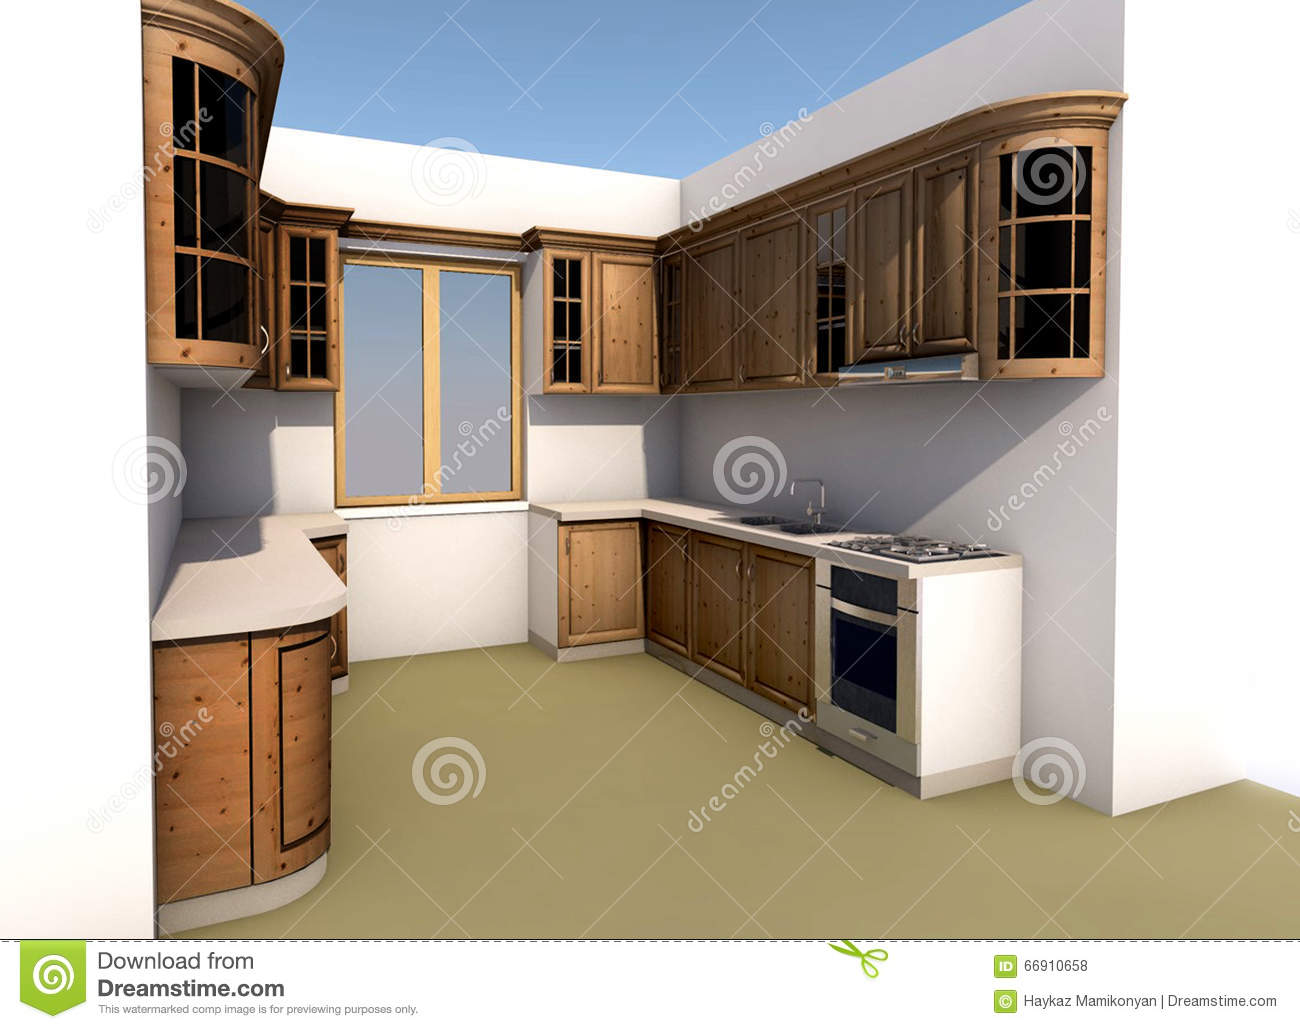 Kitchen design stock illustration  Illustration of kitchen